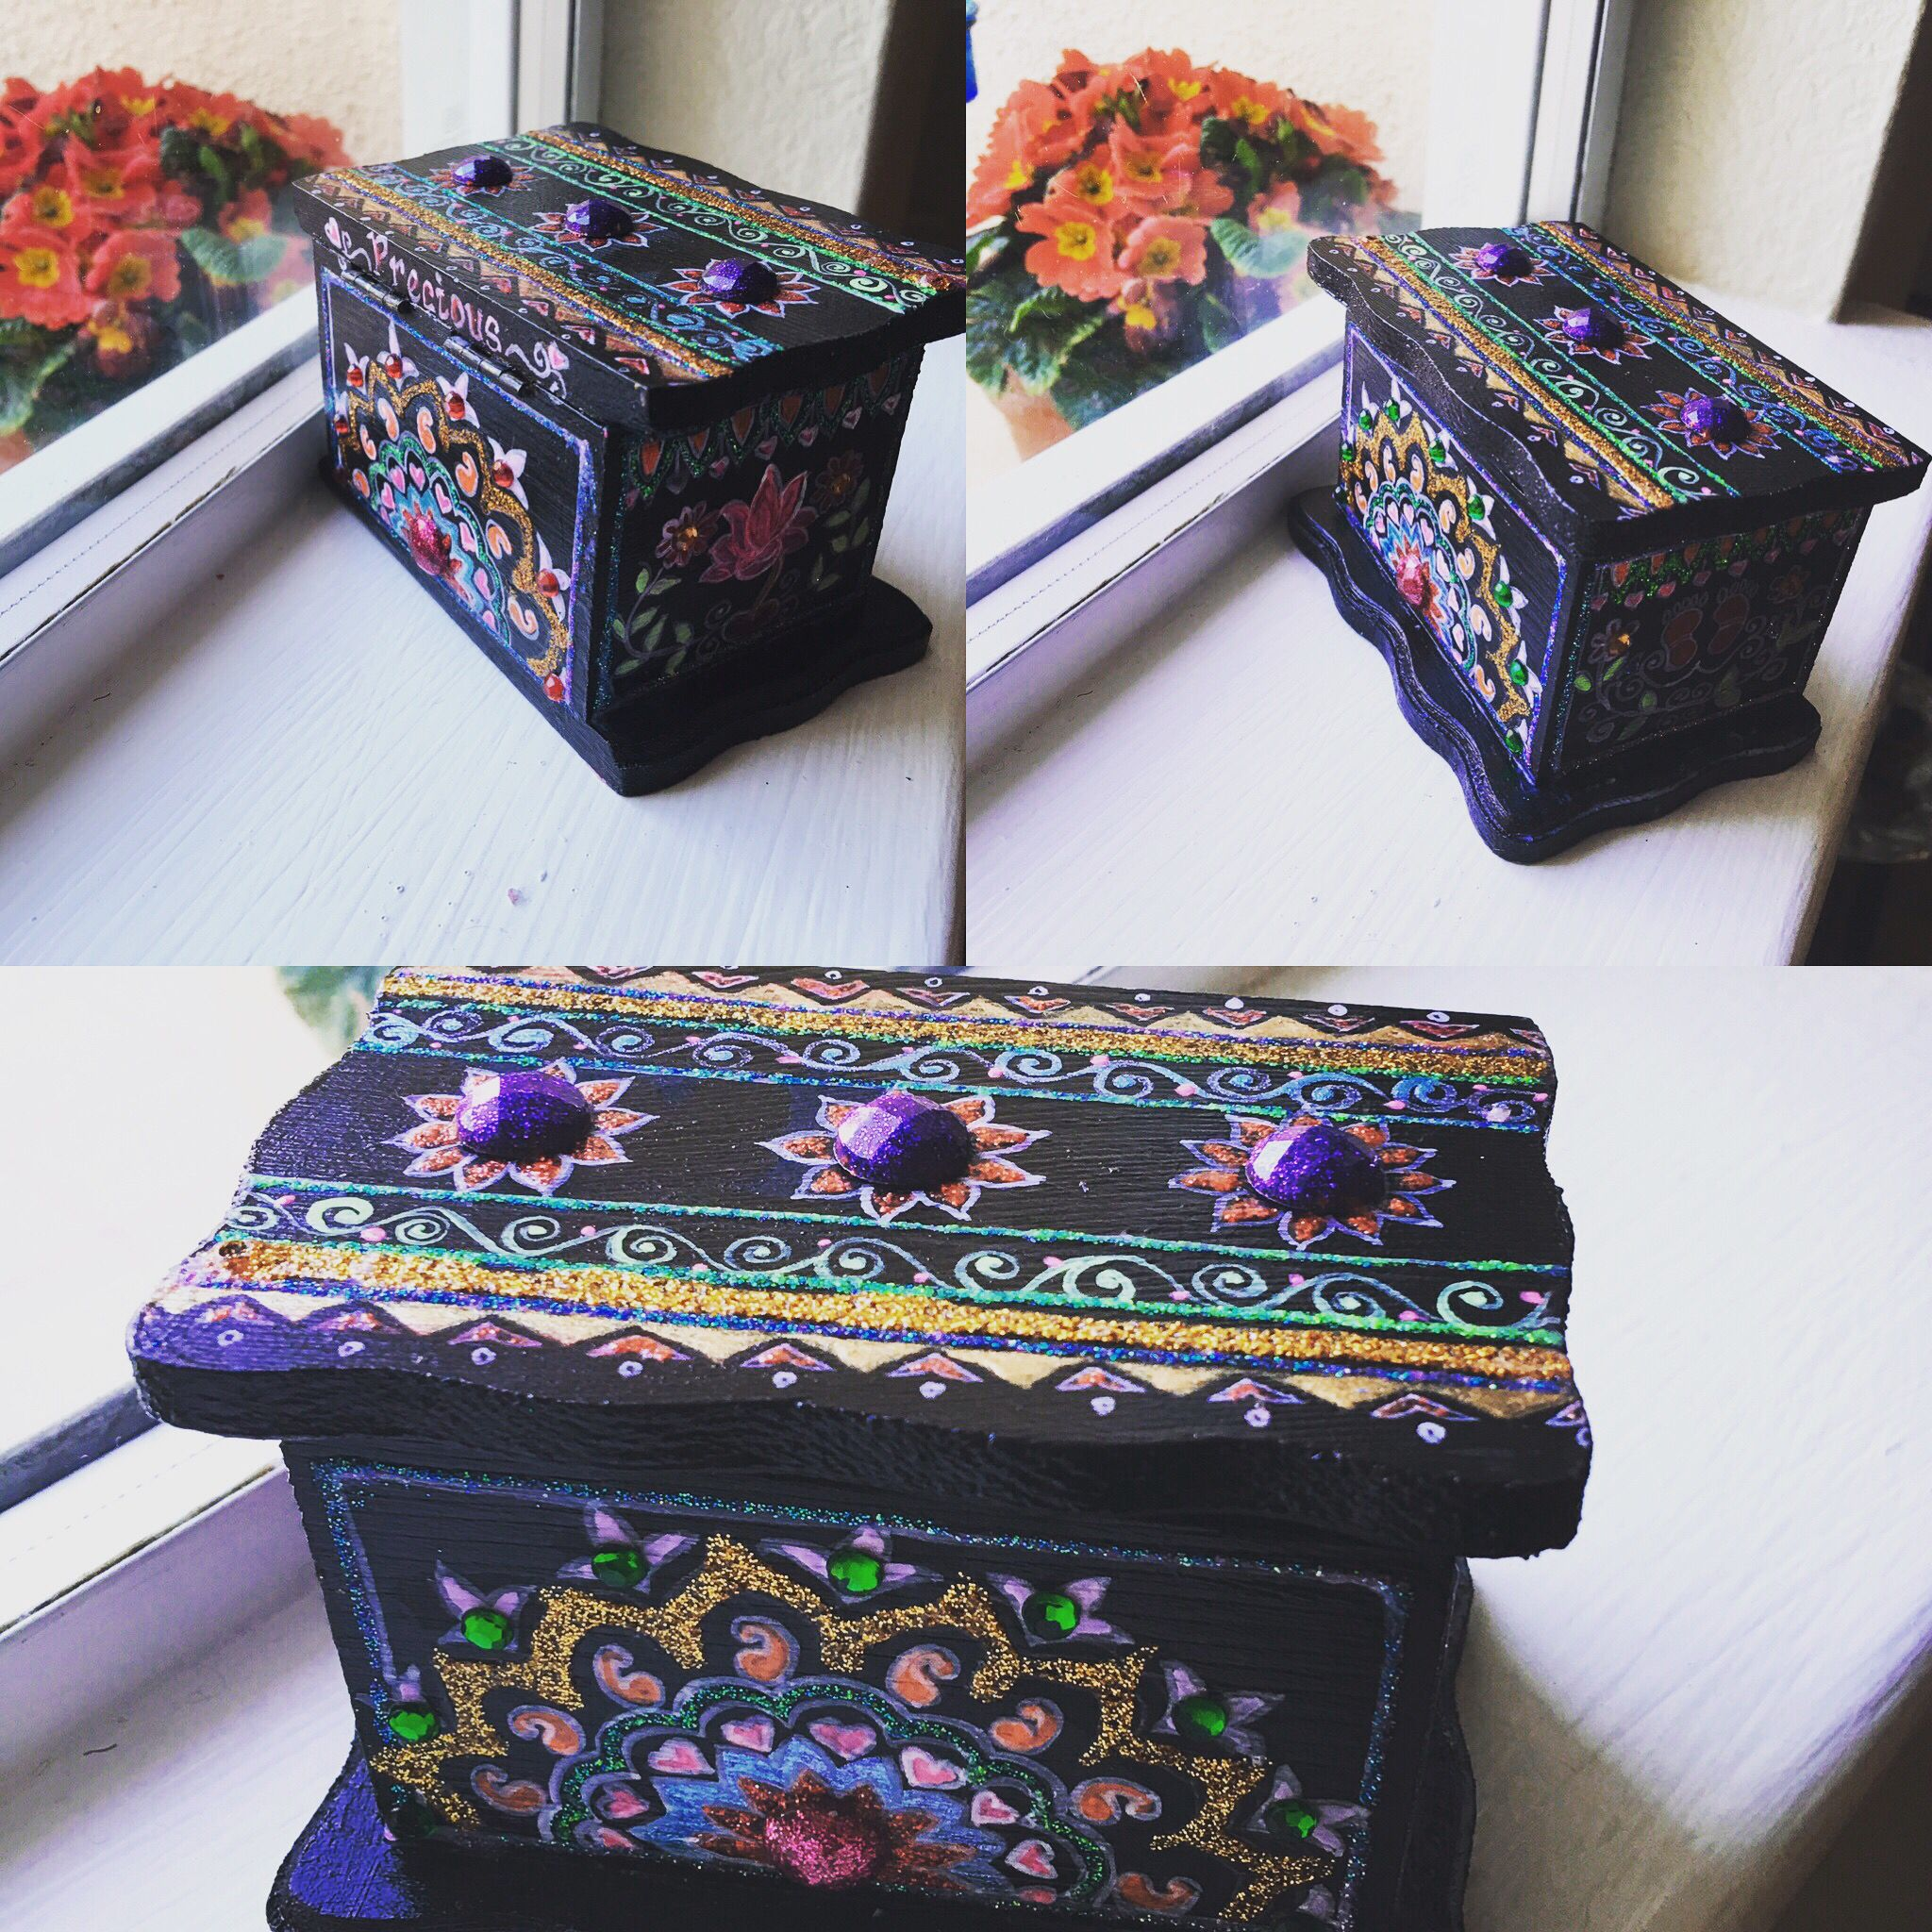 Small Wood Box Craft Hand Painted Using Acrylic And Glitter Colors Adorned With Crystals Preciousbypriya Small Wood Box Decorative Boxes Wood Boxes